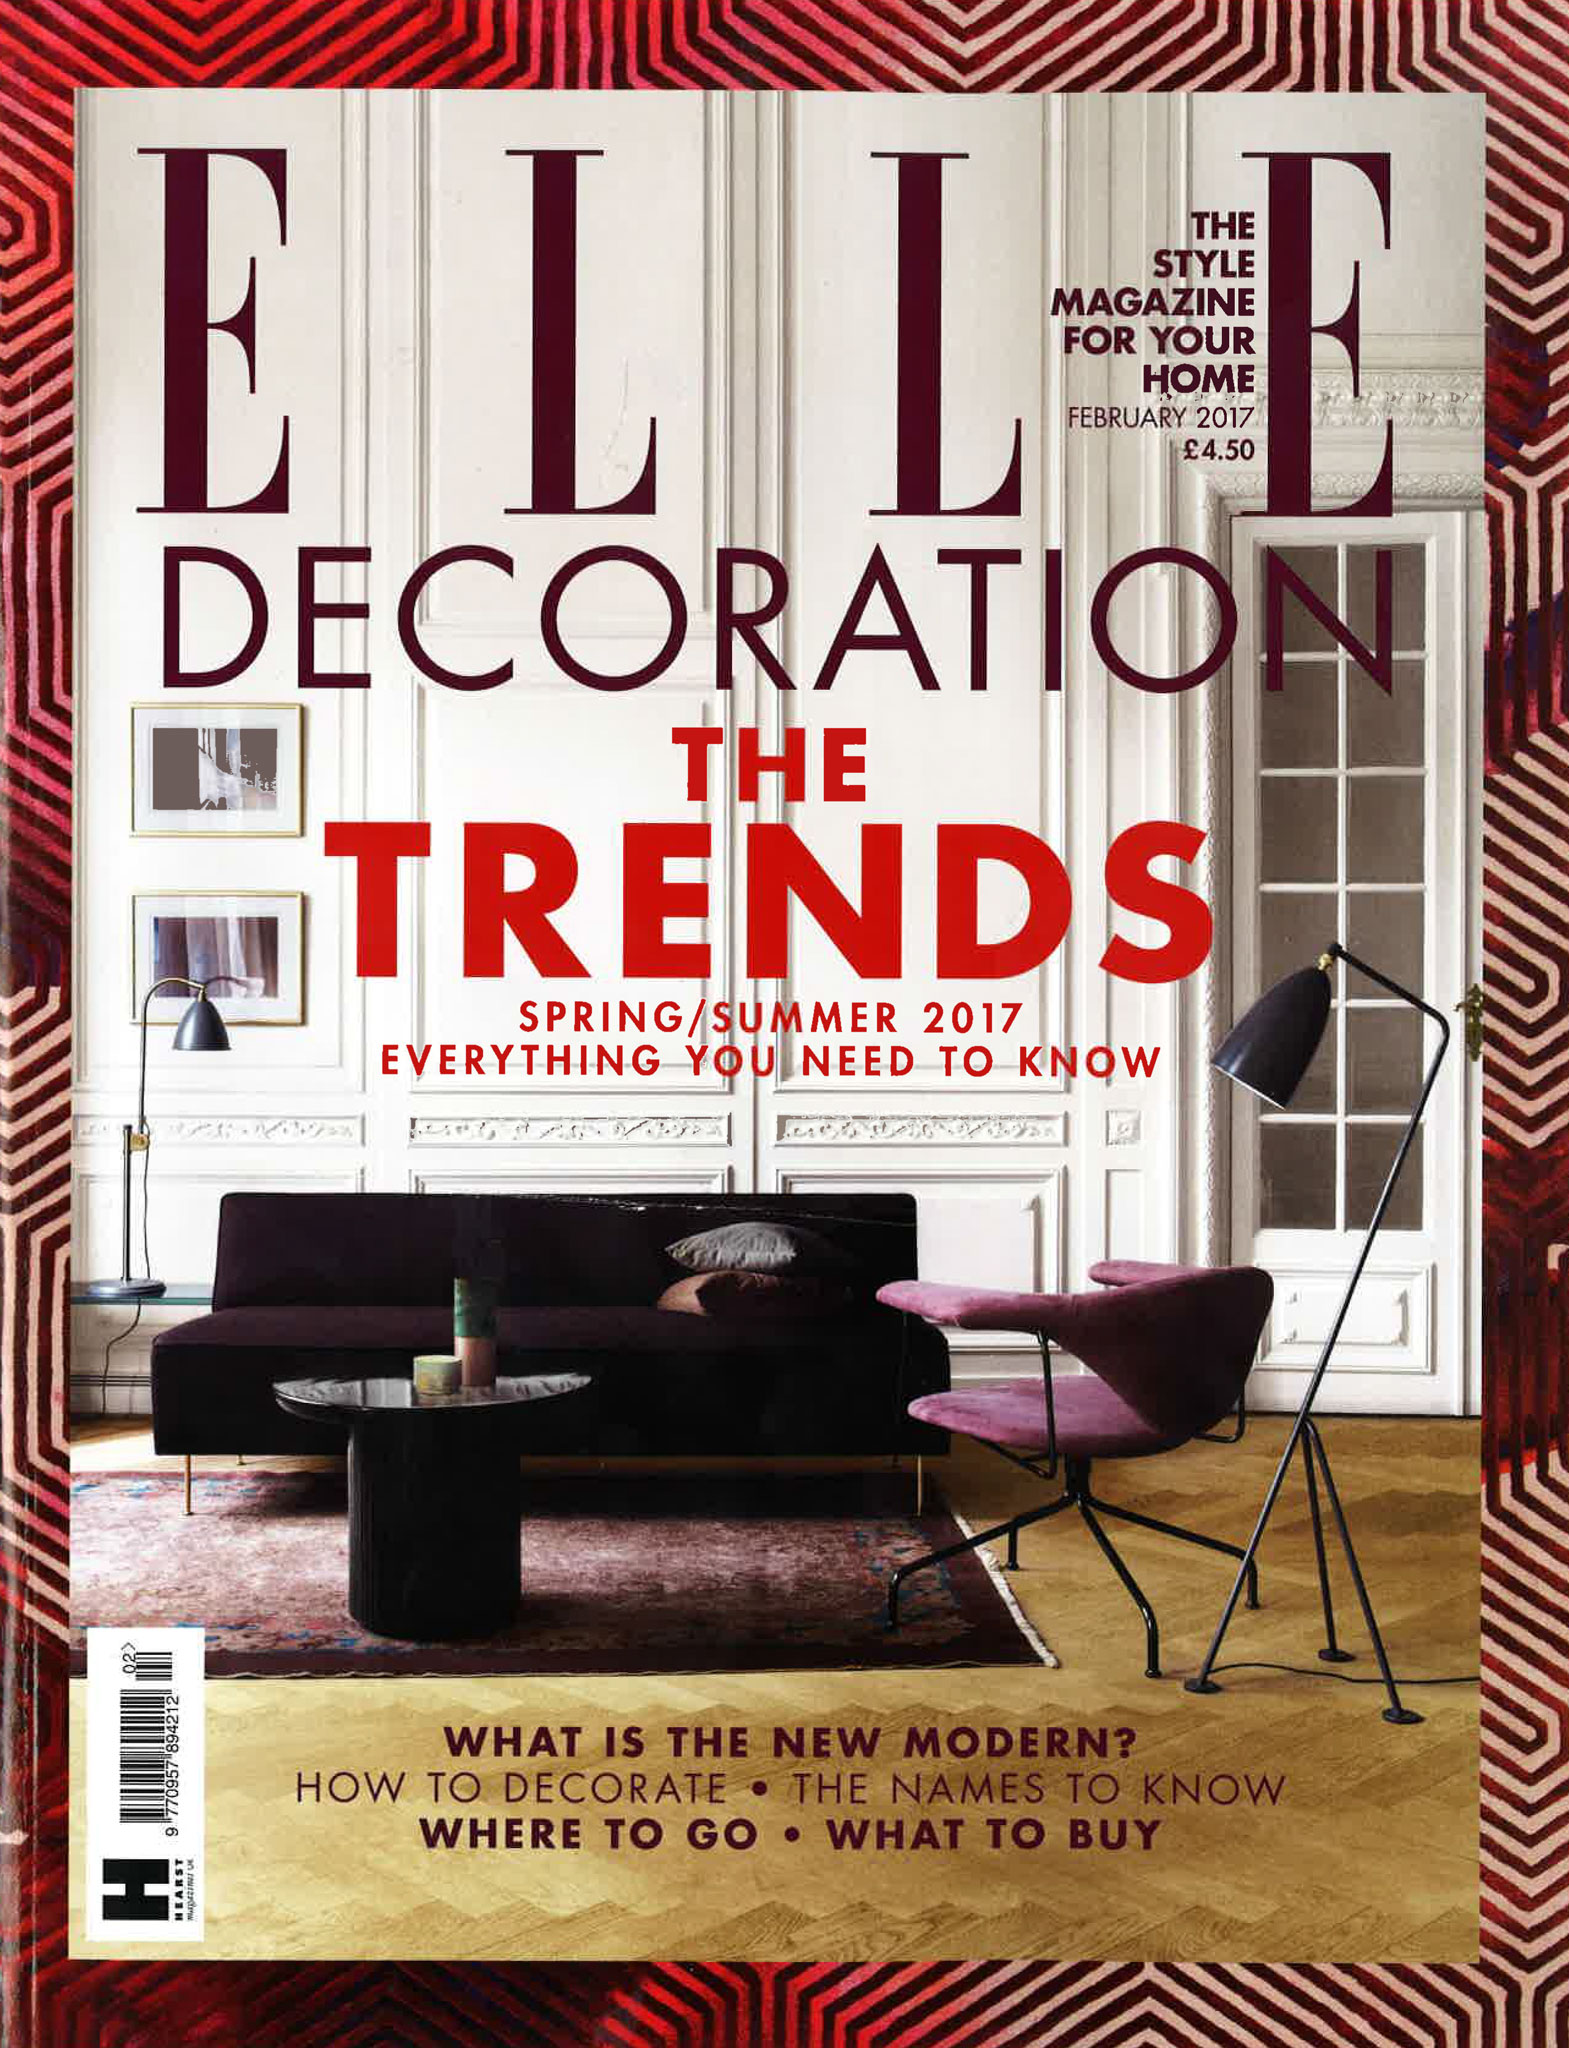 2017_02@ELLEDECORATION_UK_COV-1.jpg